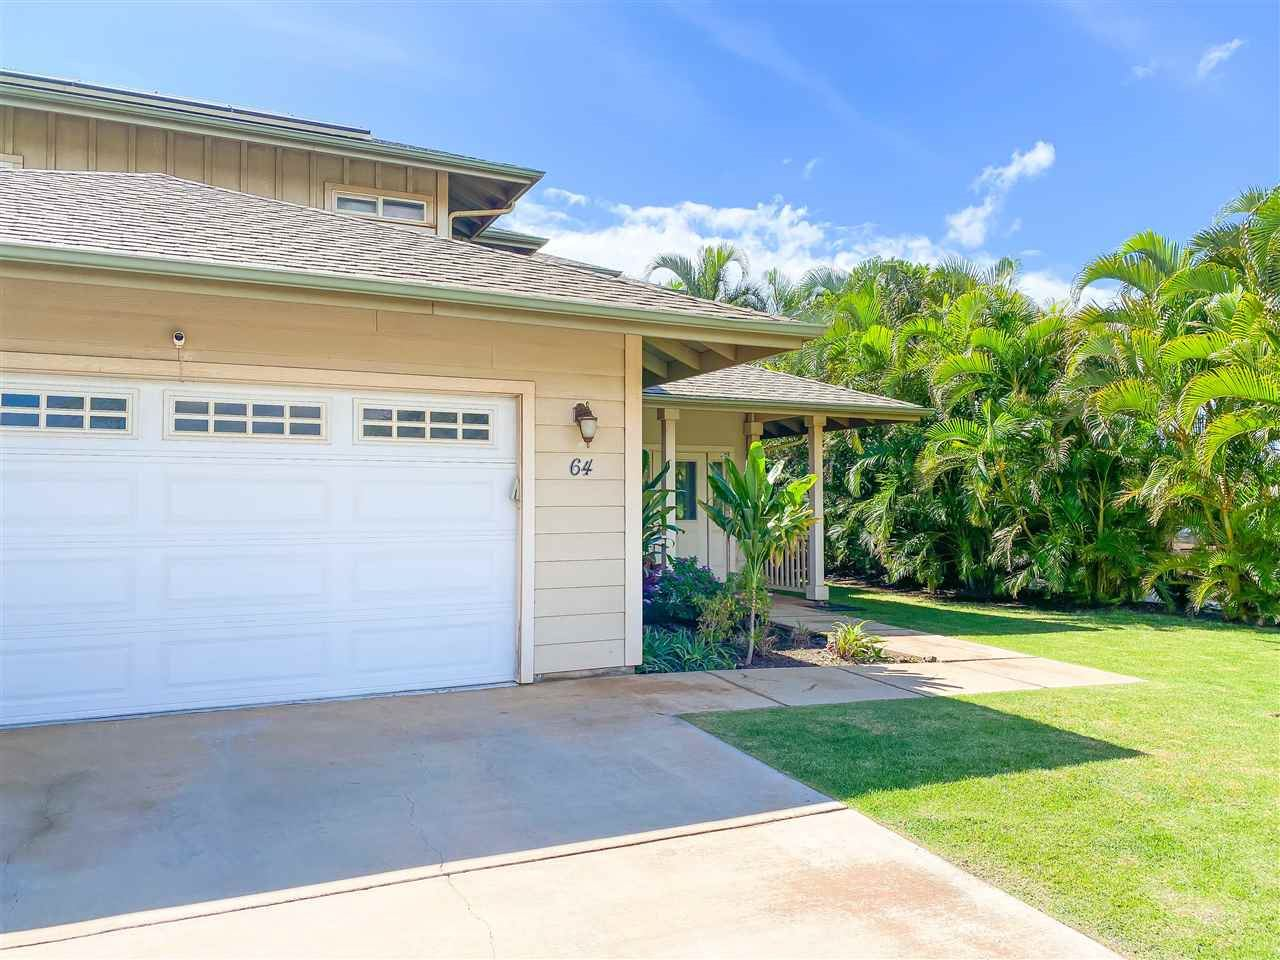 Photo of 64 Honuea Pl, Kihei, HI 96753-6091 (MLS # 390466)